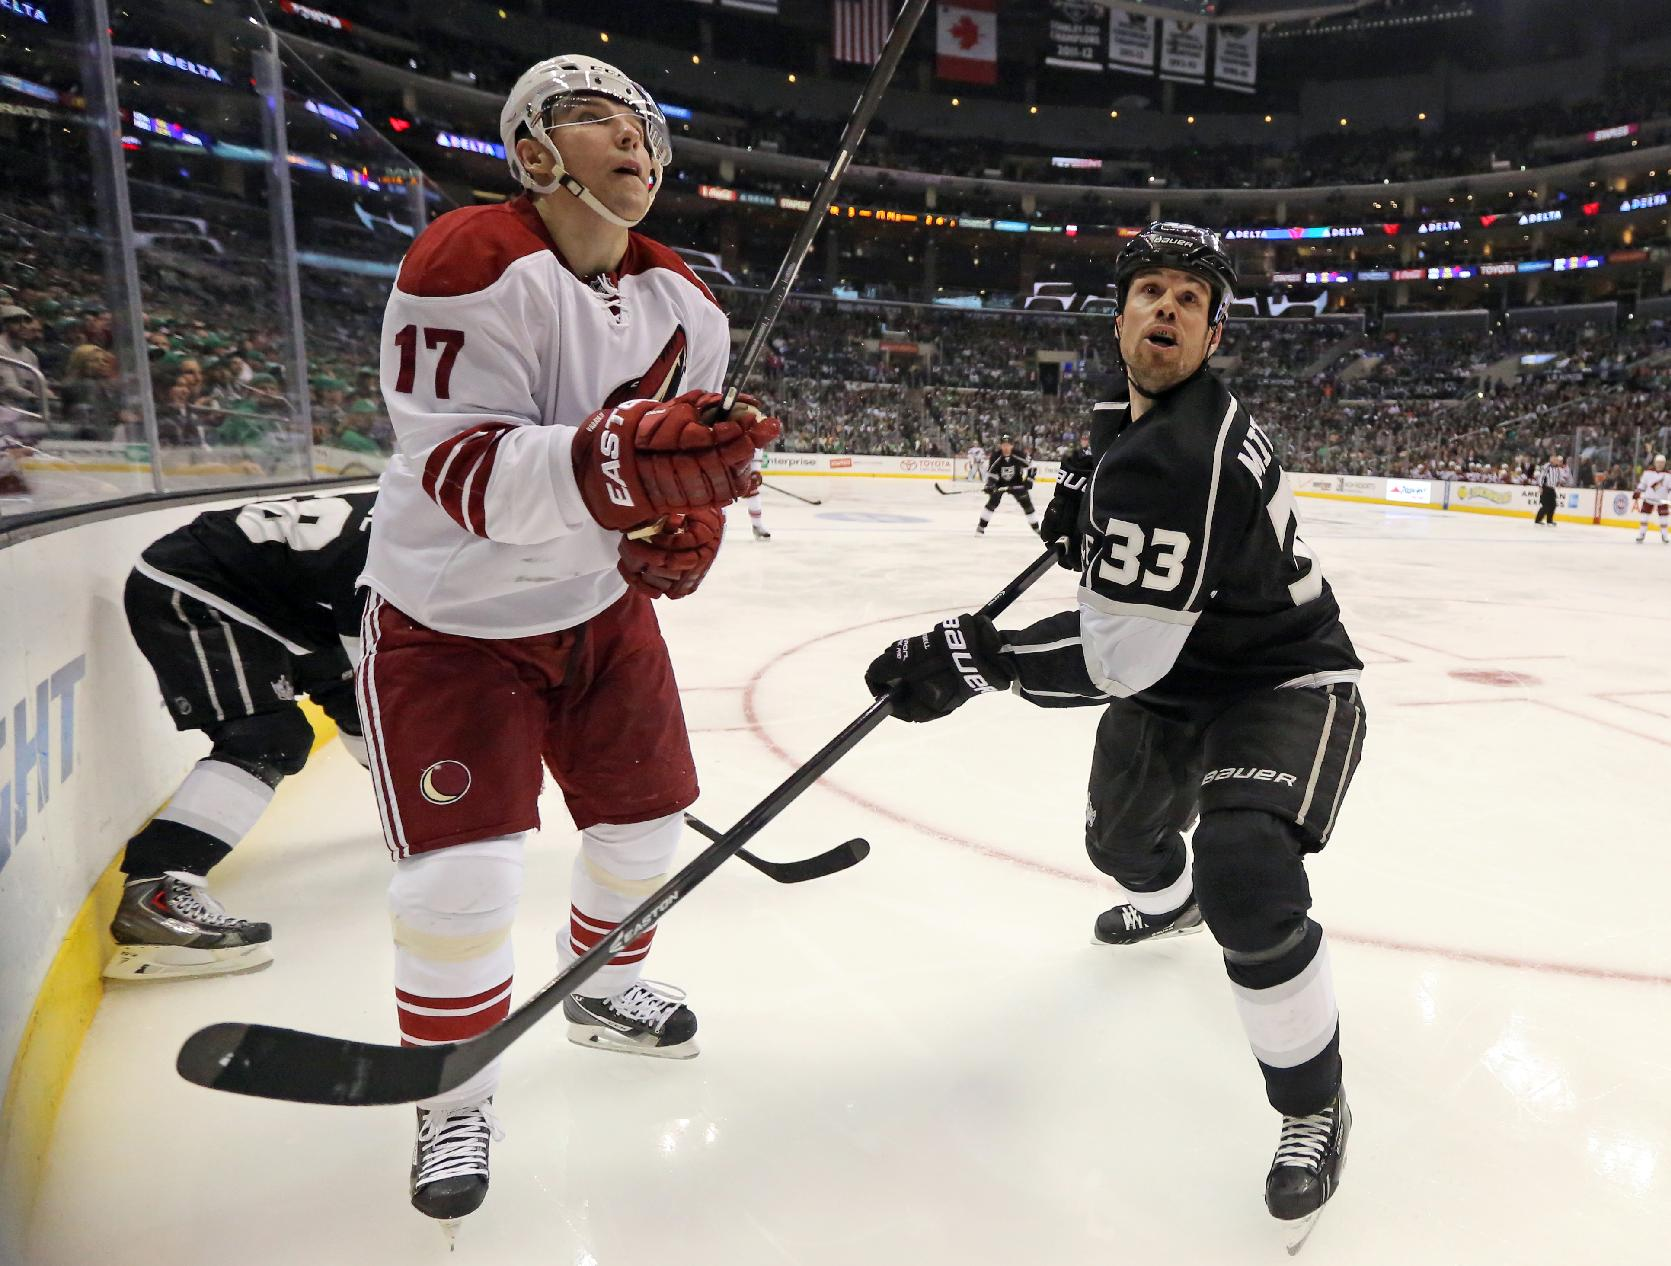 Phoenix Coyotes right winger Radim Vrbata (17), of the Czech Republic, and Los Angeles Kings defenseman Willie Mitchell (33) watch the puck sail high in the third period of an NHL hockey game in Los Angeles Monday, March 17, 2014.  The Coyotes won, 4-3